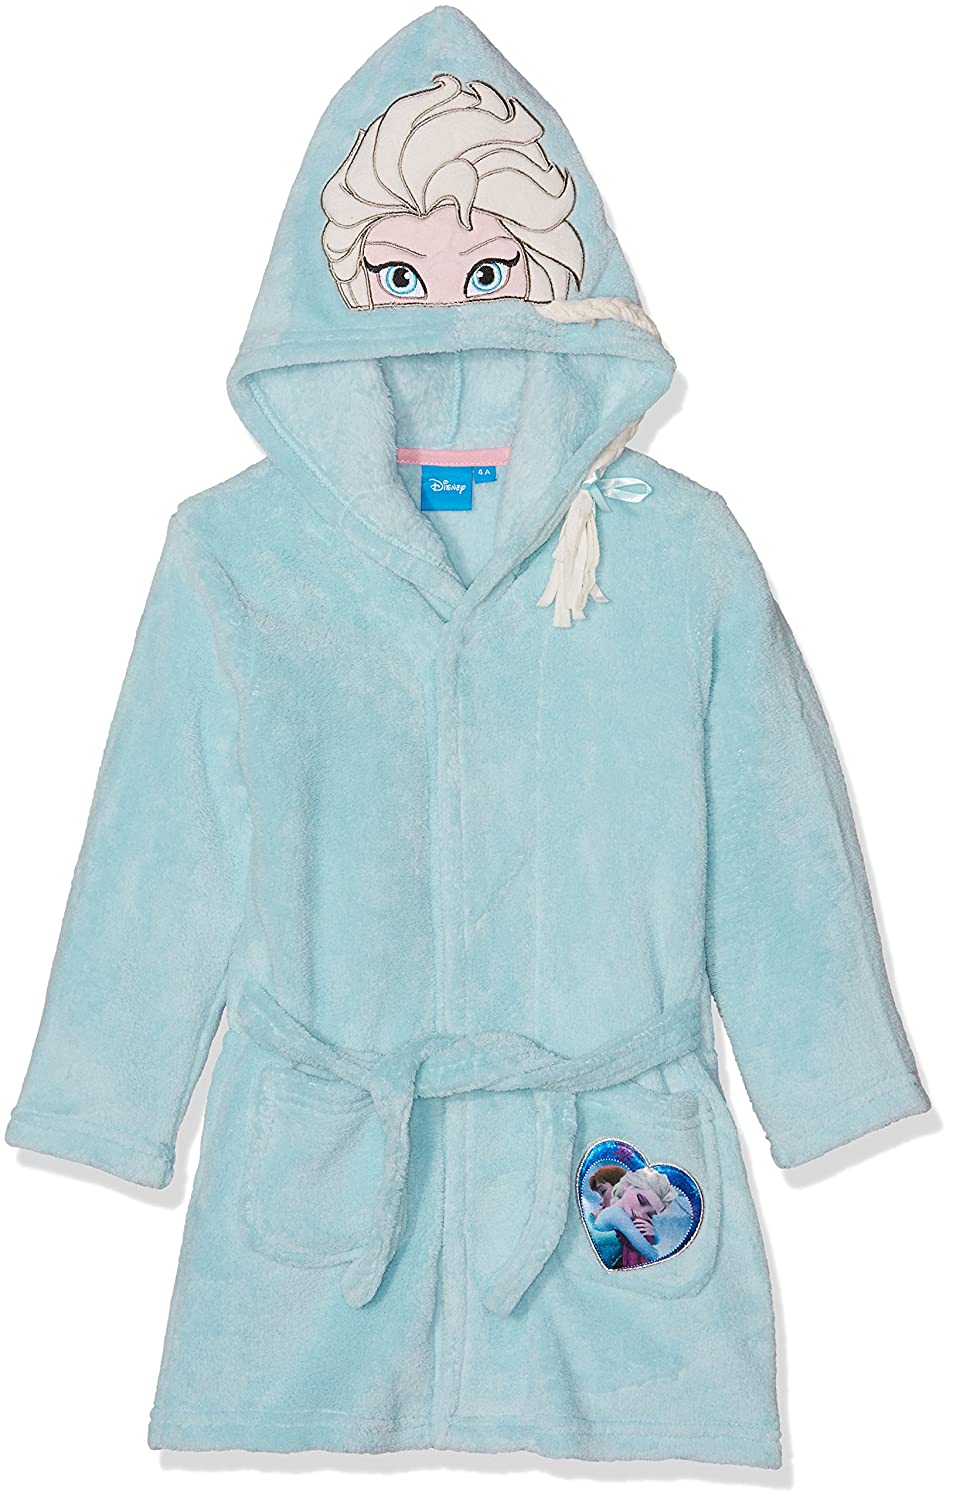 Disney Frozen Official Licensed Girls Onesie/Sleepsuit/Jumpsuit/Robe/Gown Bleu (Blue) 3-4 (Size: 4 Years) LA REINE DES NEIGES DPH2044